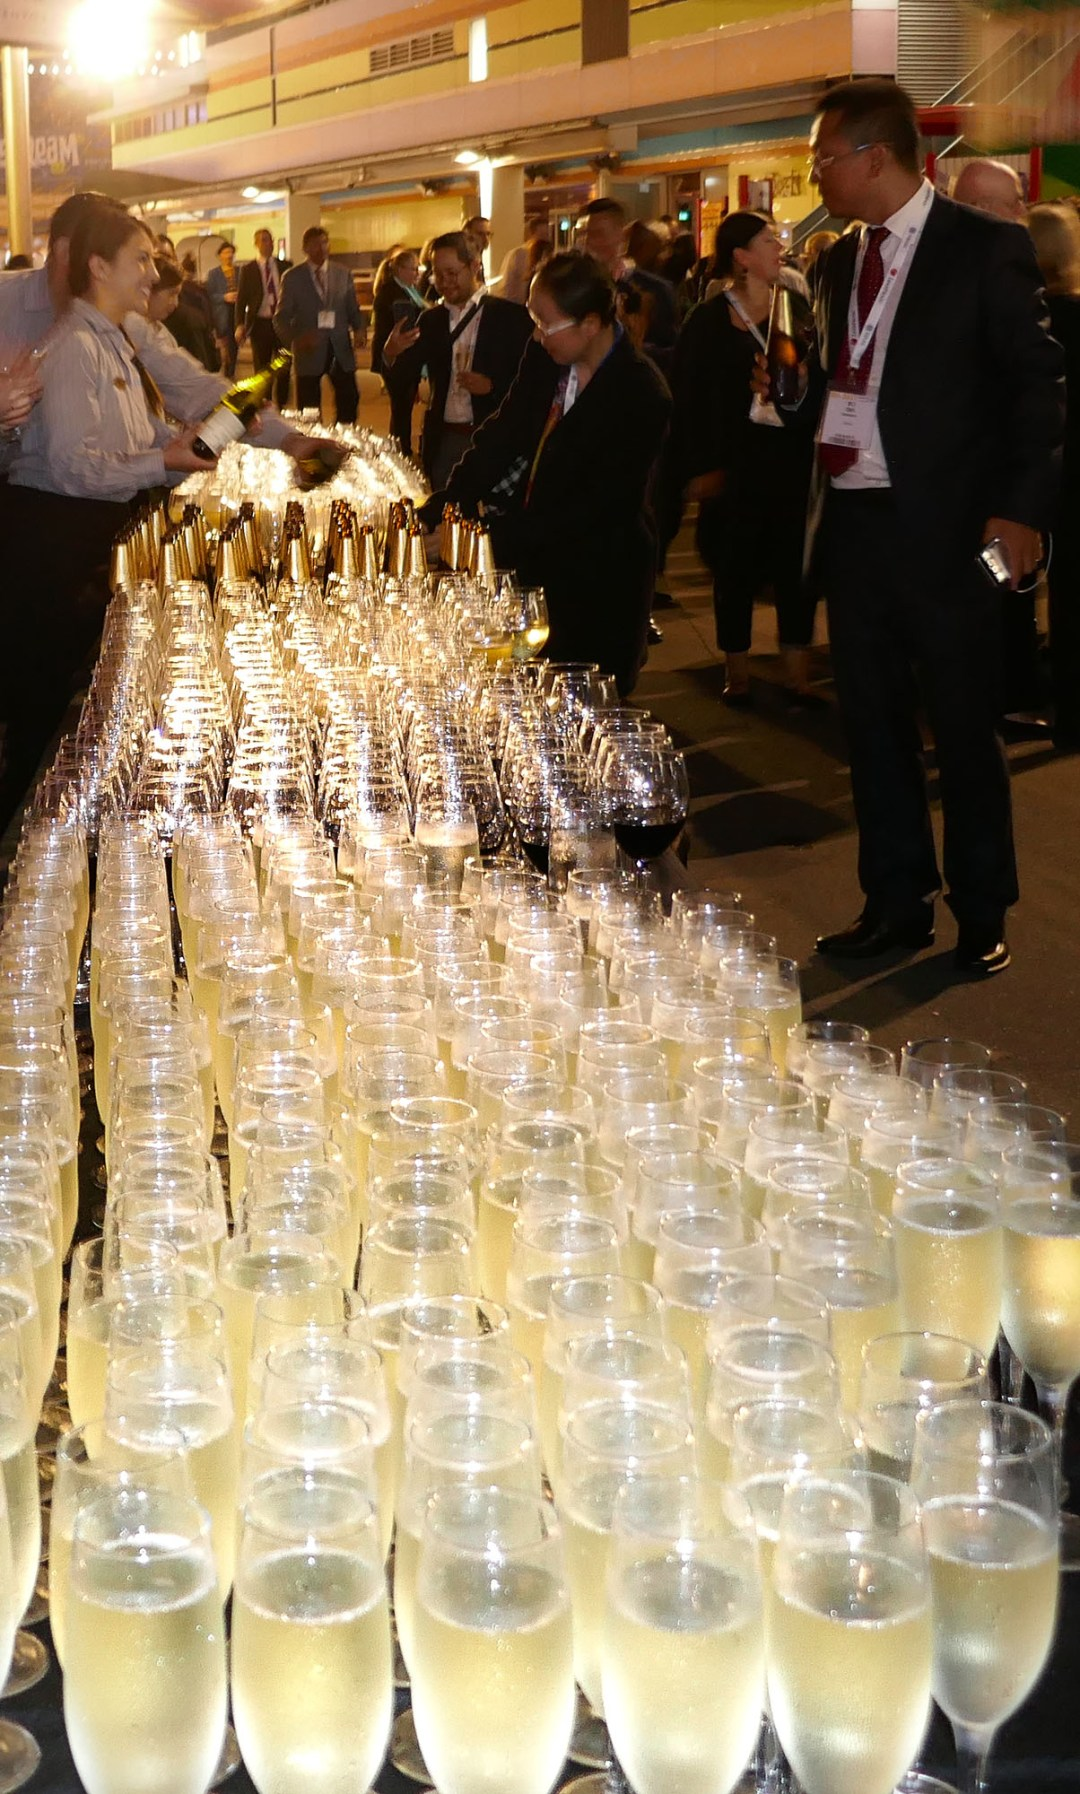 Wine bar at the International Bar Association annual conference in Sydney for boomervoice